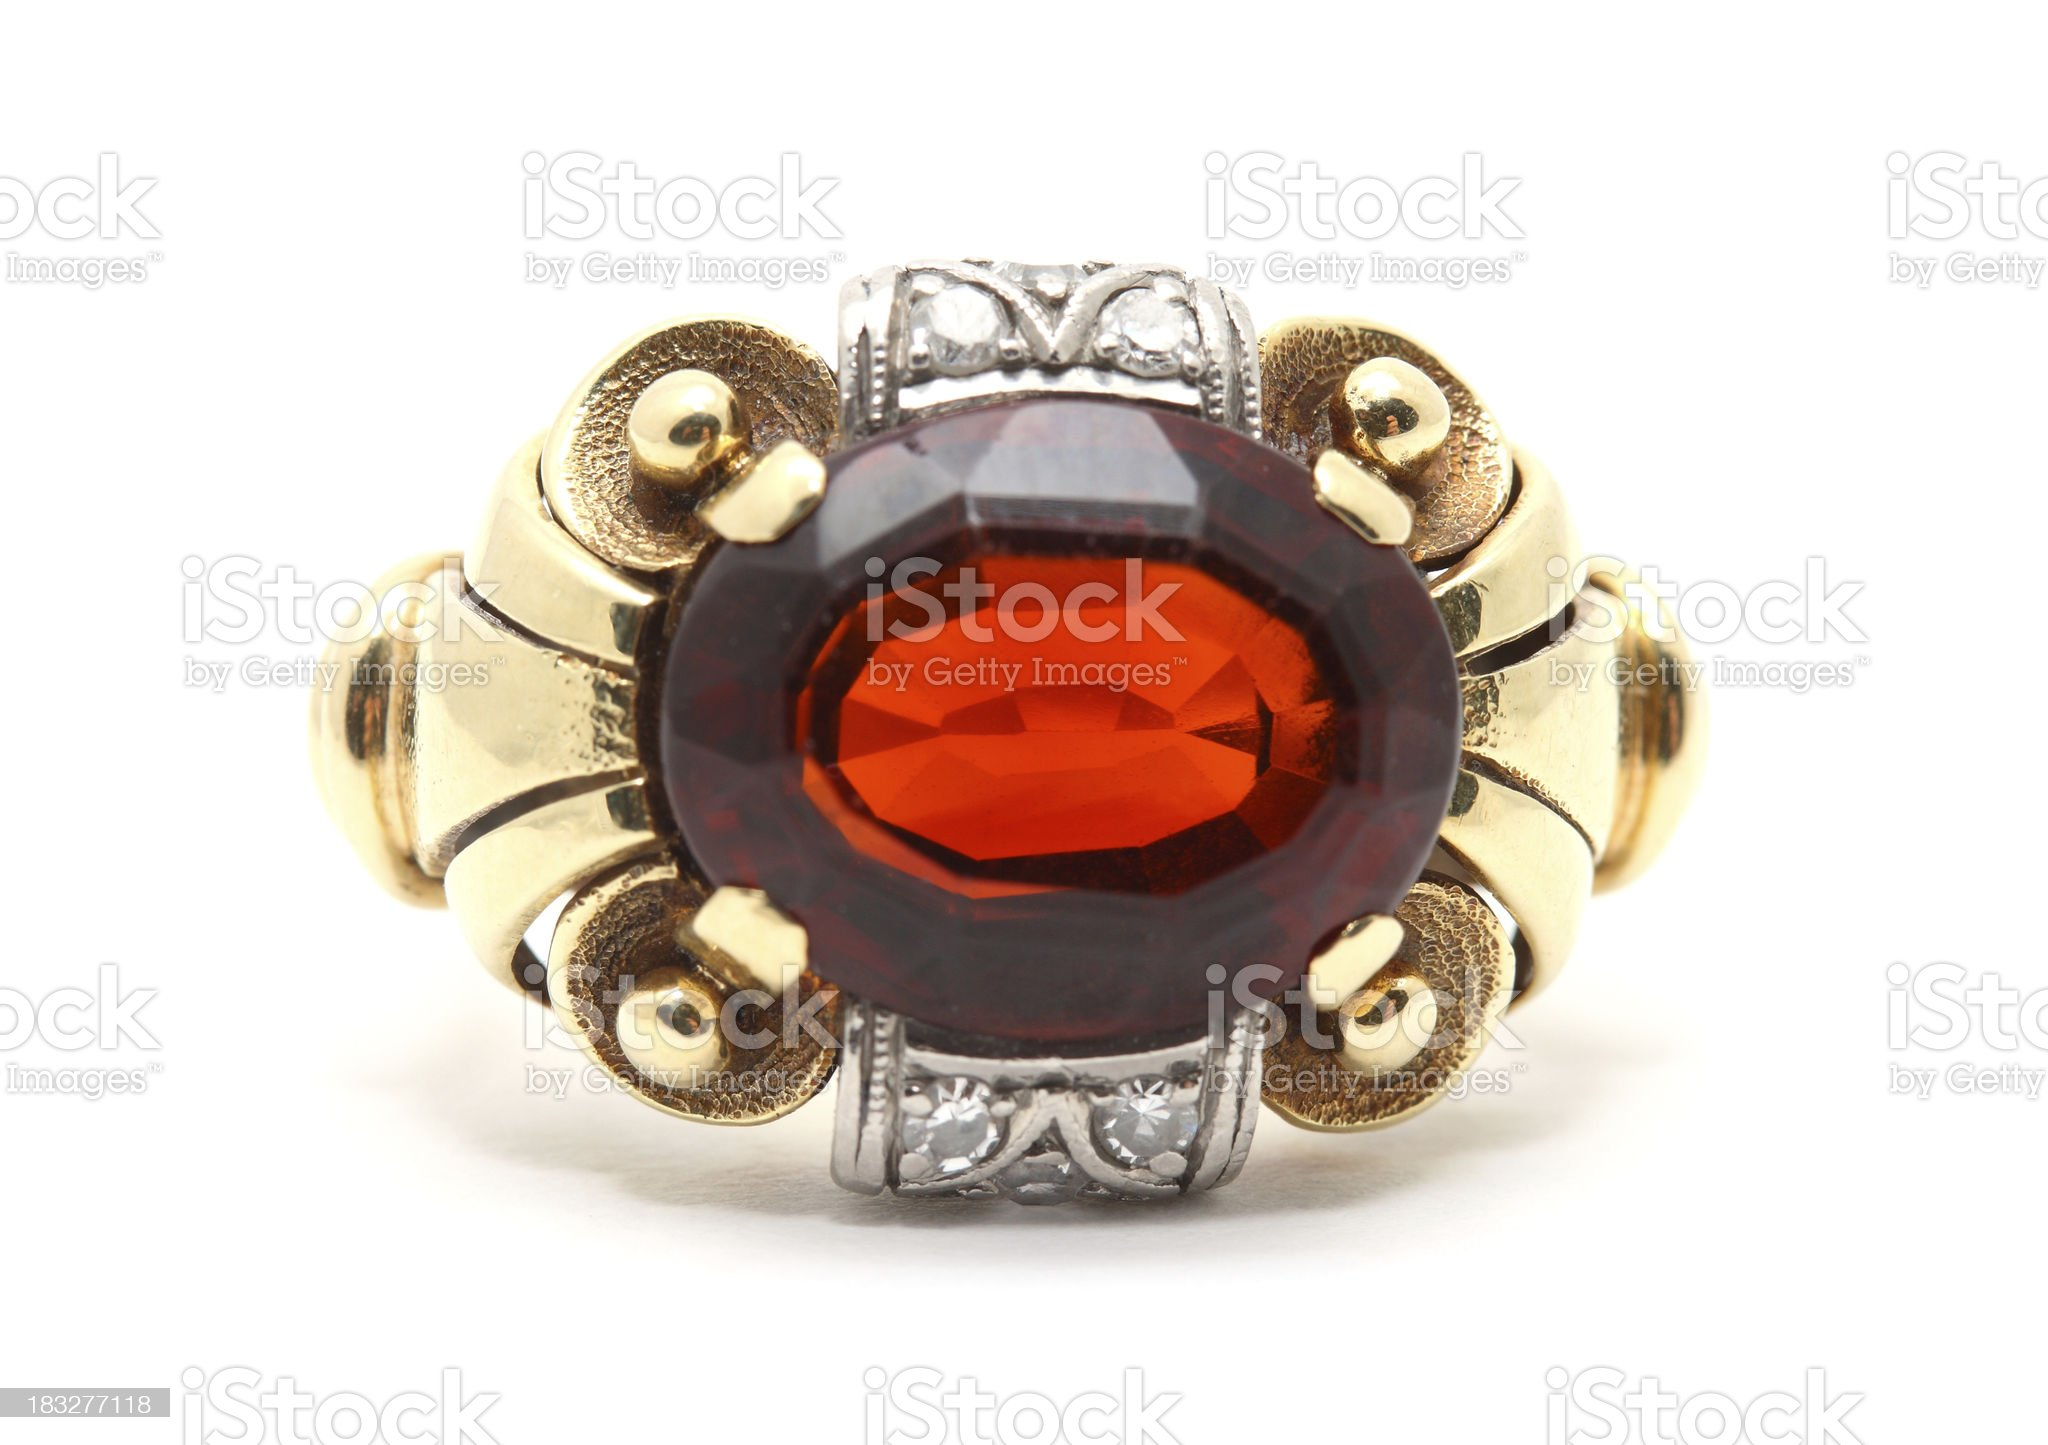 Old Gold Ring with Madeira topaz stone on White Background royalty-free stock photo